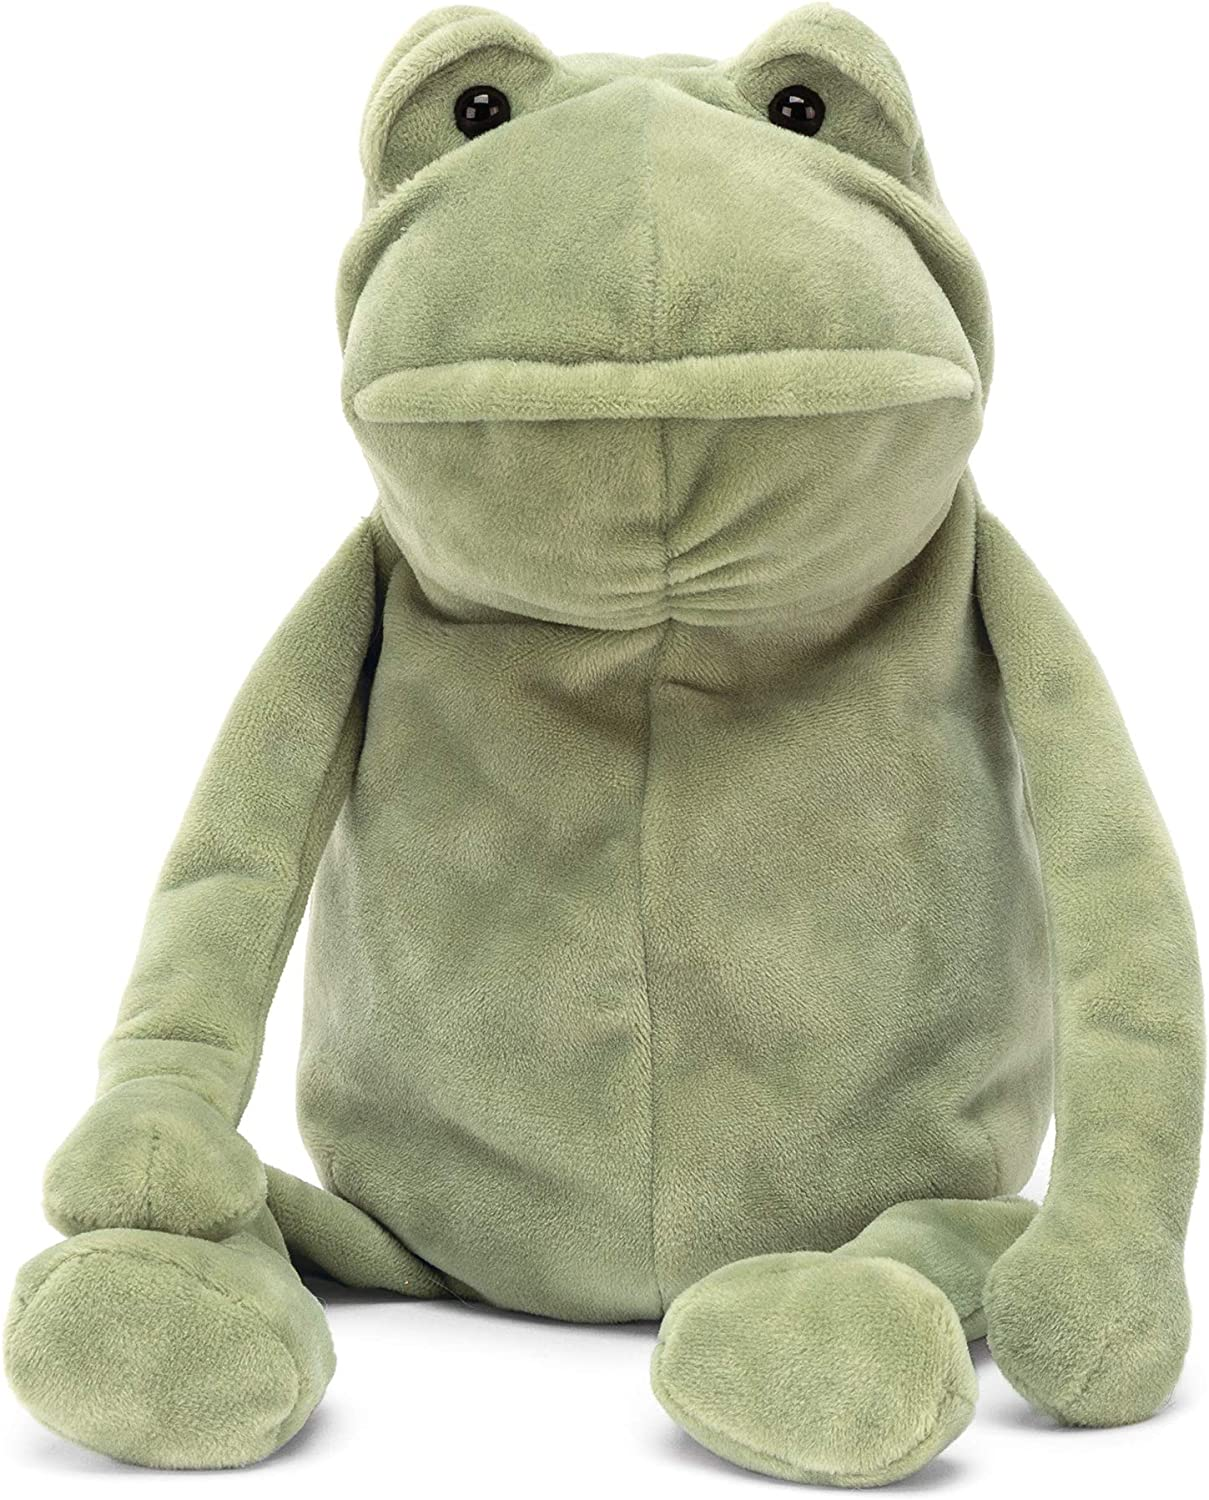 Jellycat Squiggle Frog Stuffed Animal 9 inches Small